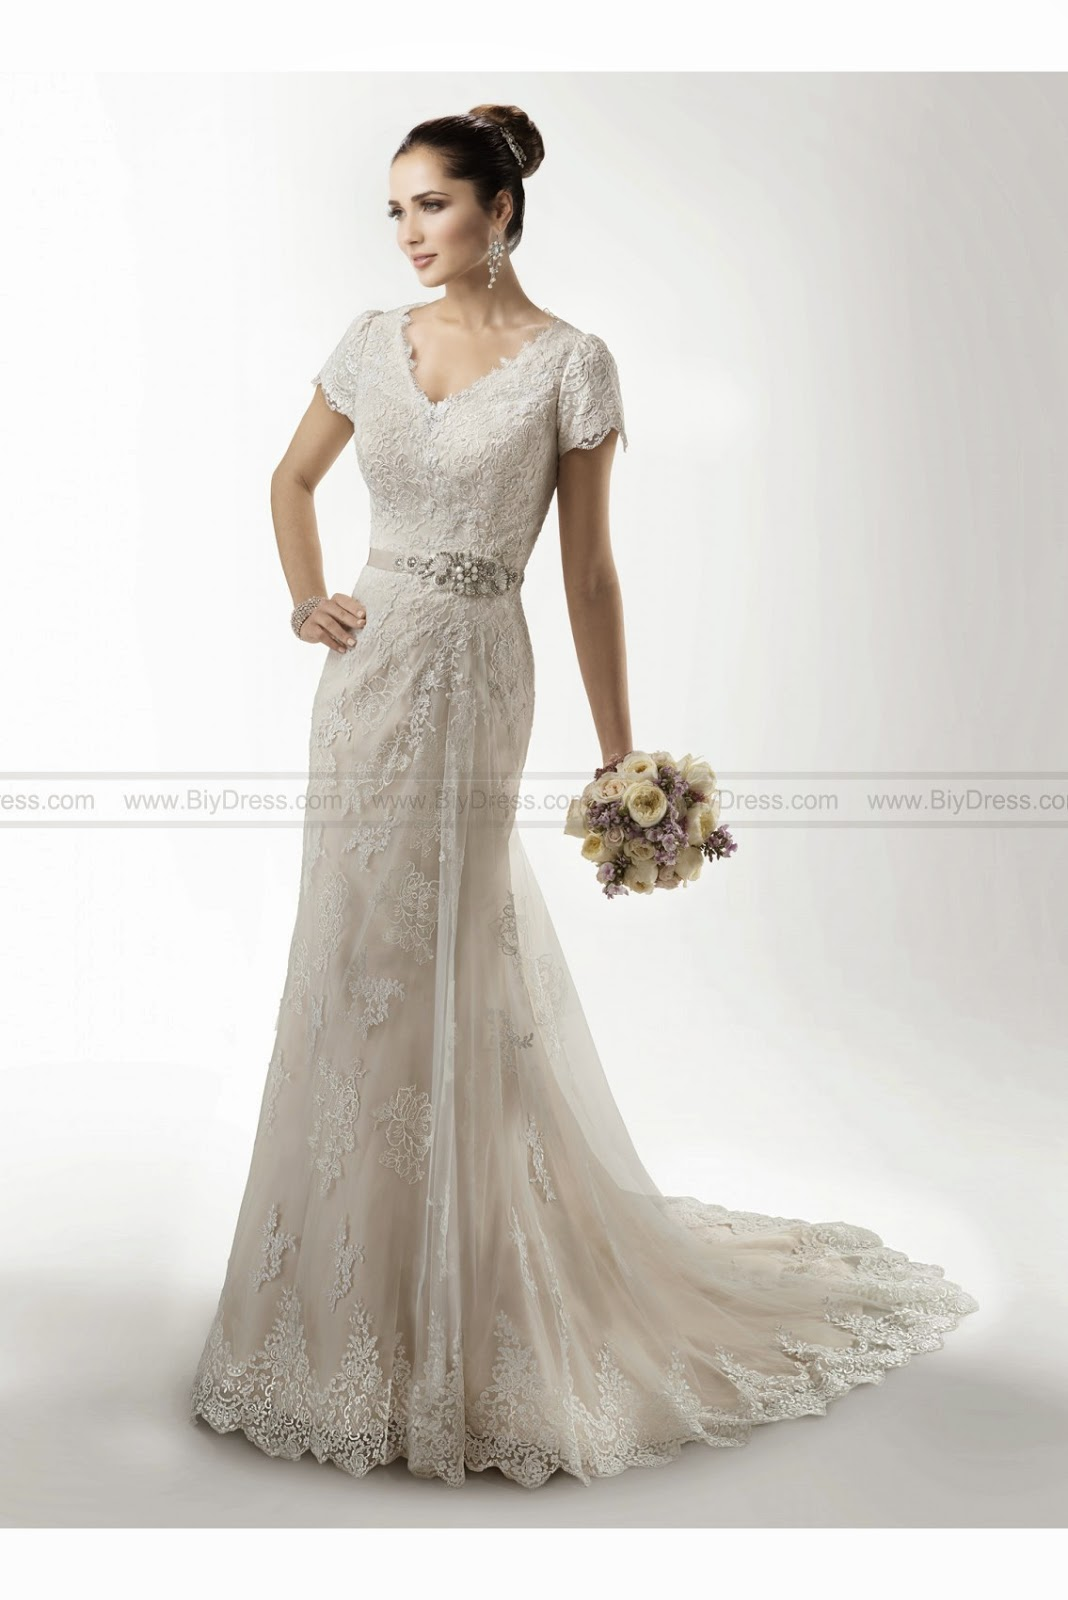 2016 cheap wedding dresses online at biydress beautiful bride the store also accepts and resells other wedding themed items including flower girl dresses shoes gloves jewelry veils purses and mother of the bride izmirmasajfo